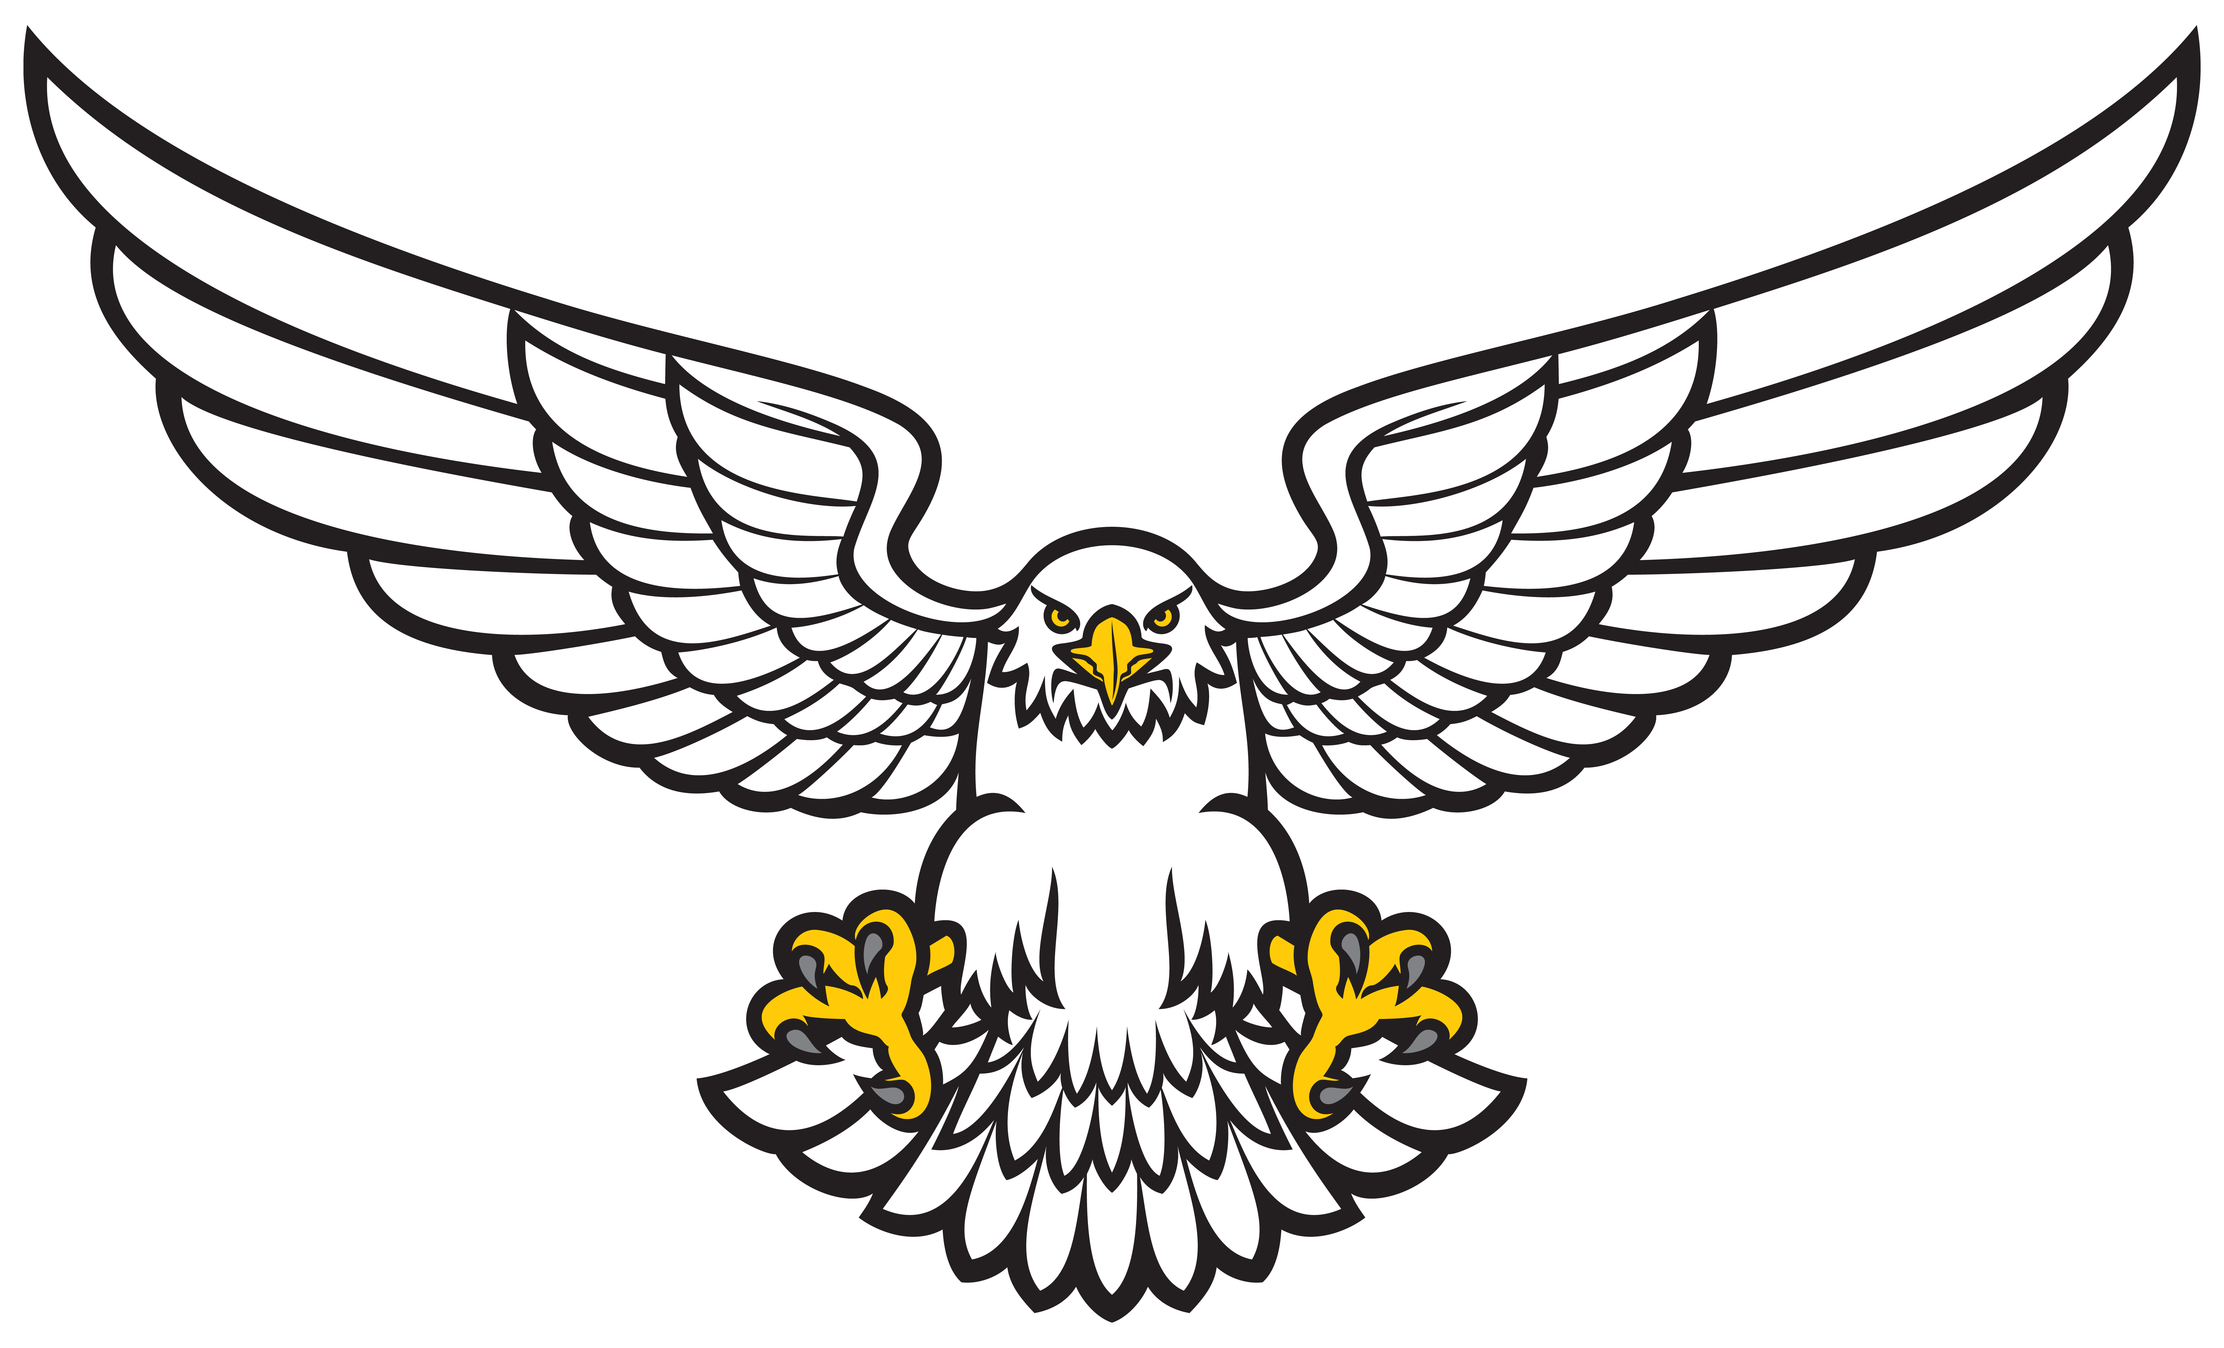 Free cliparts drawing download. Eagle clipart easy